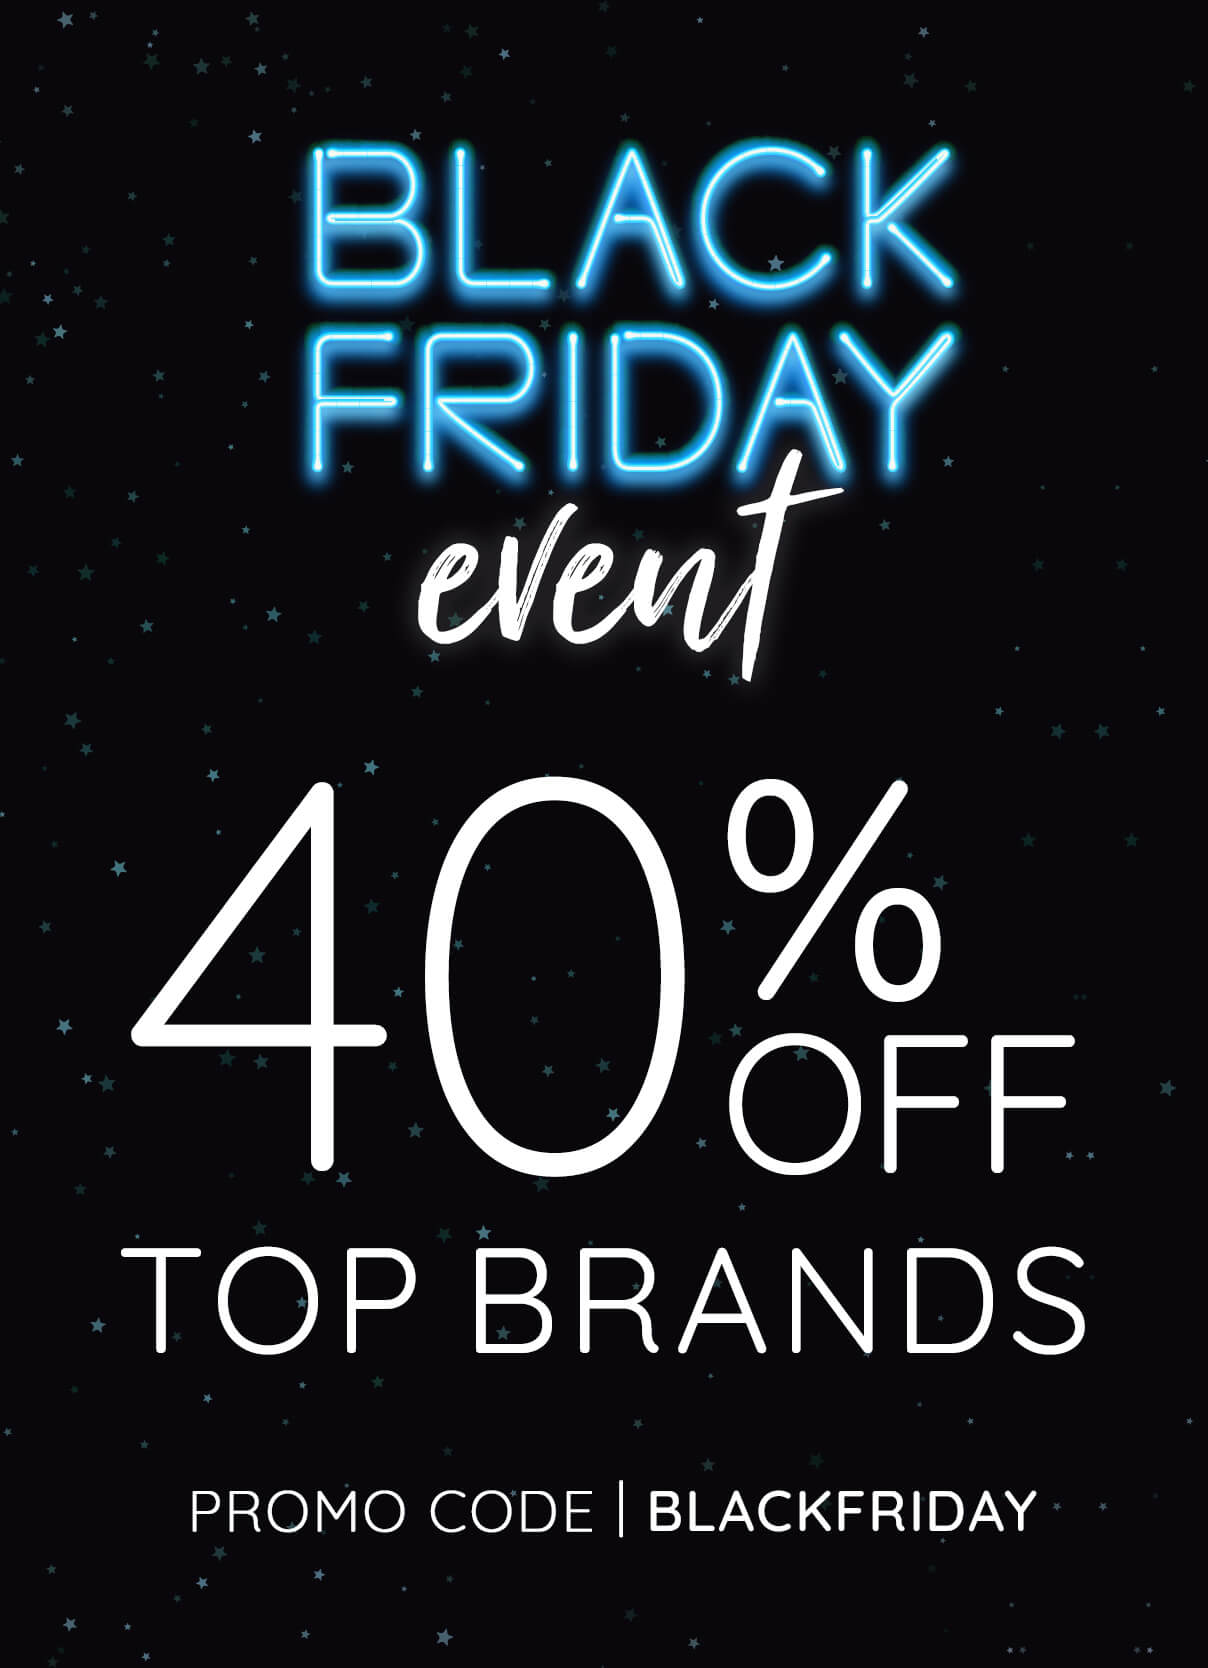 Black Friday Event - 40% Off Top Brands